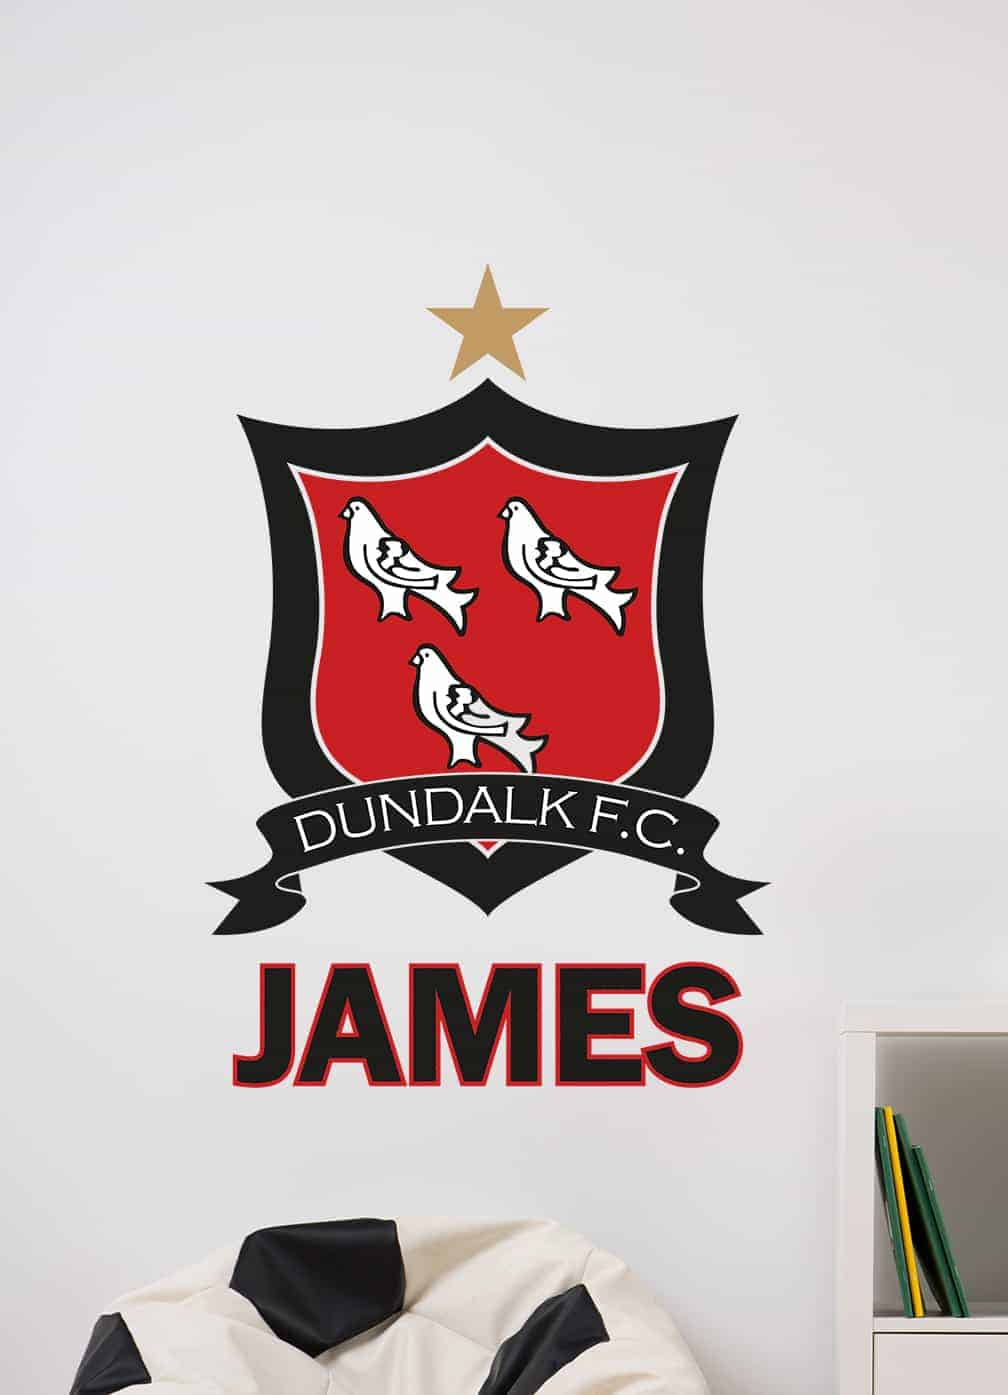 Dundalk Fc Crest Wall Decal Sticker Personalised By Eydecals